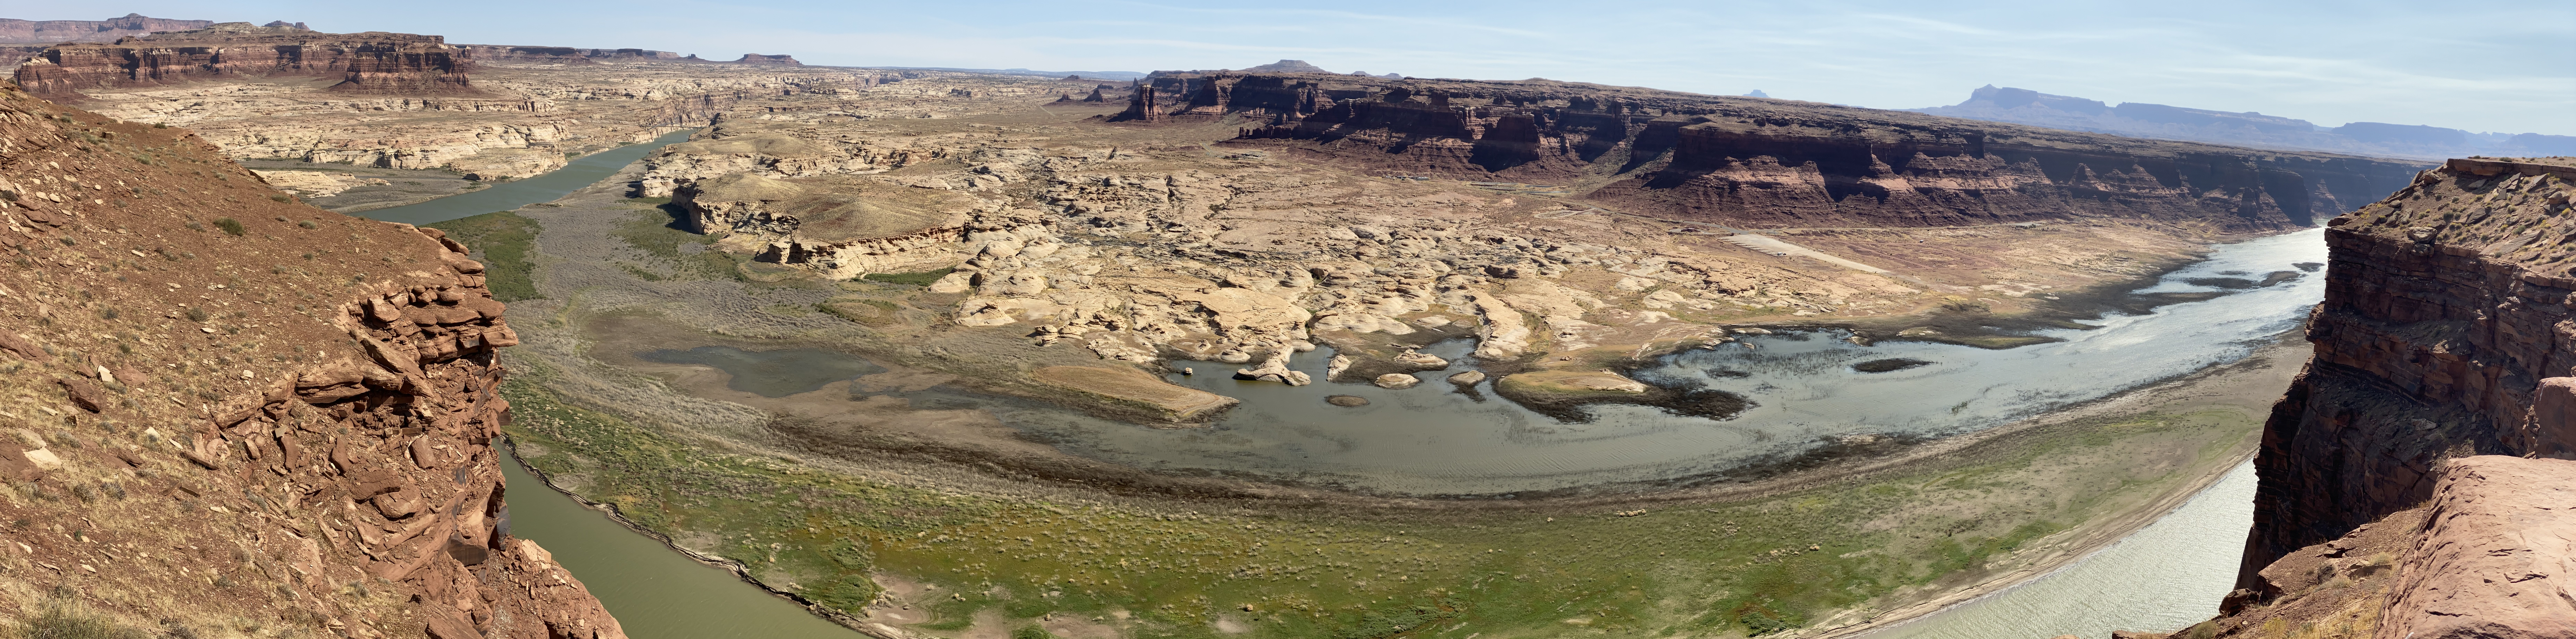 Panorama of Colorado River from the Hite Overlook.